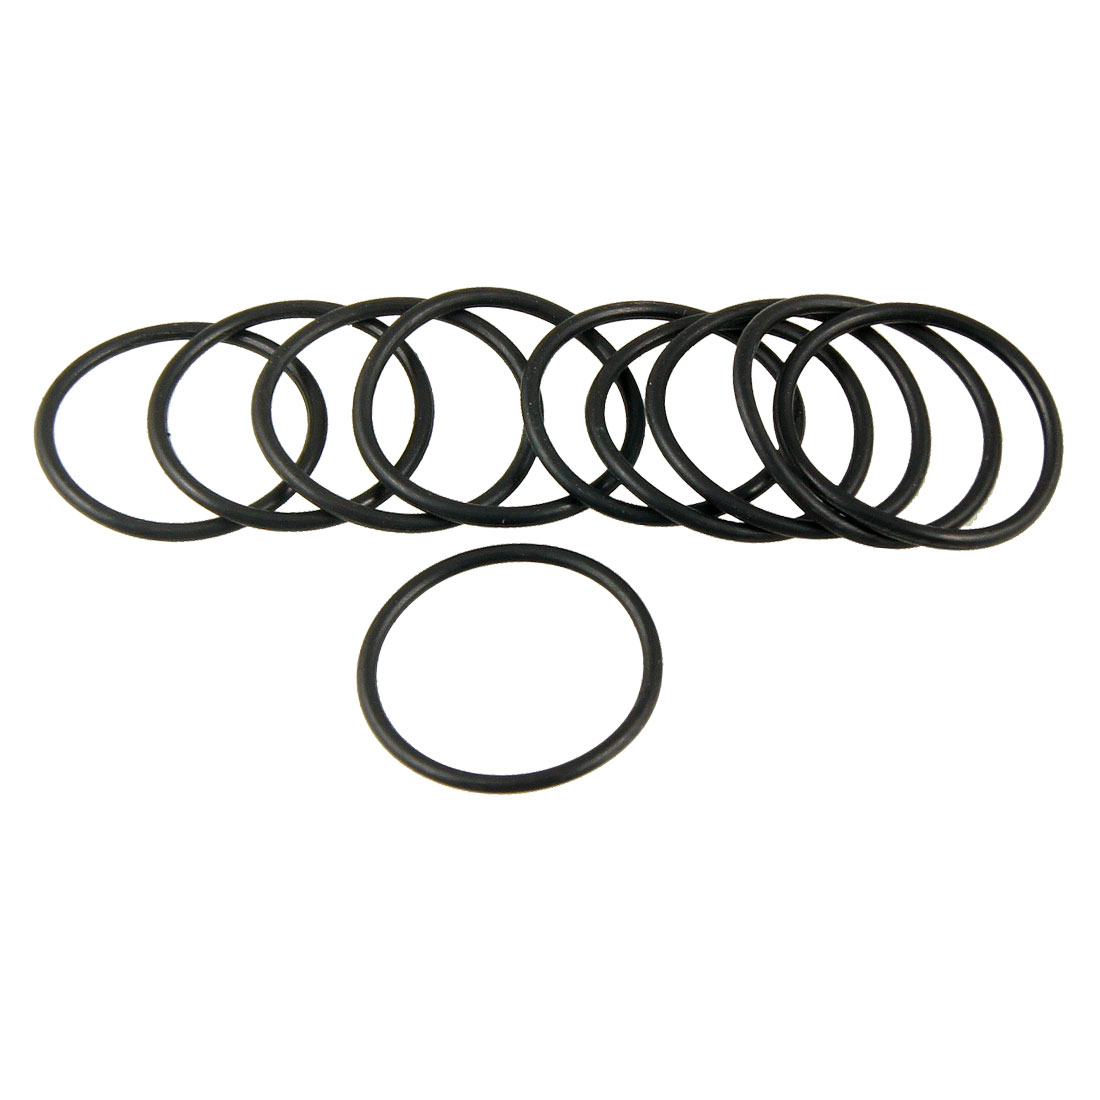 28mm-x-2mm-Automobile-NBR-O-Rings-Hole-Sealing-Gaskets-Washers-10-Pcs